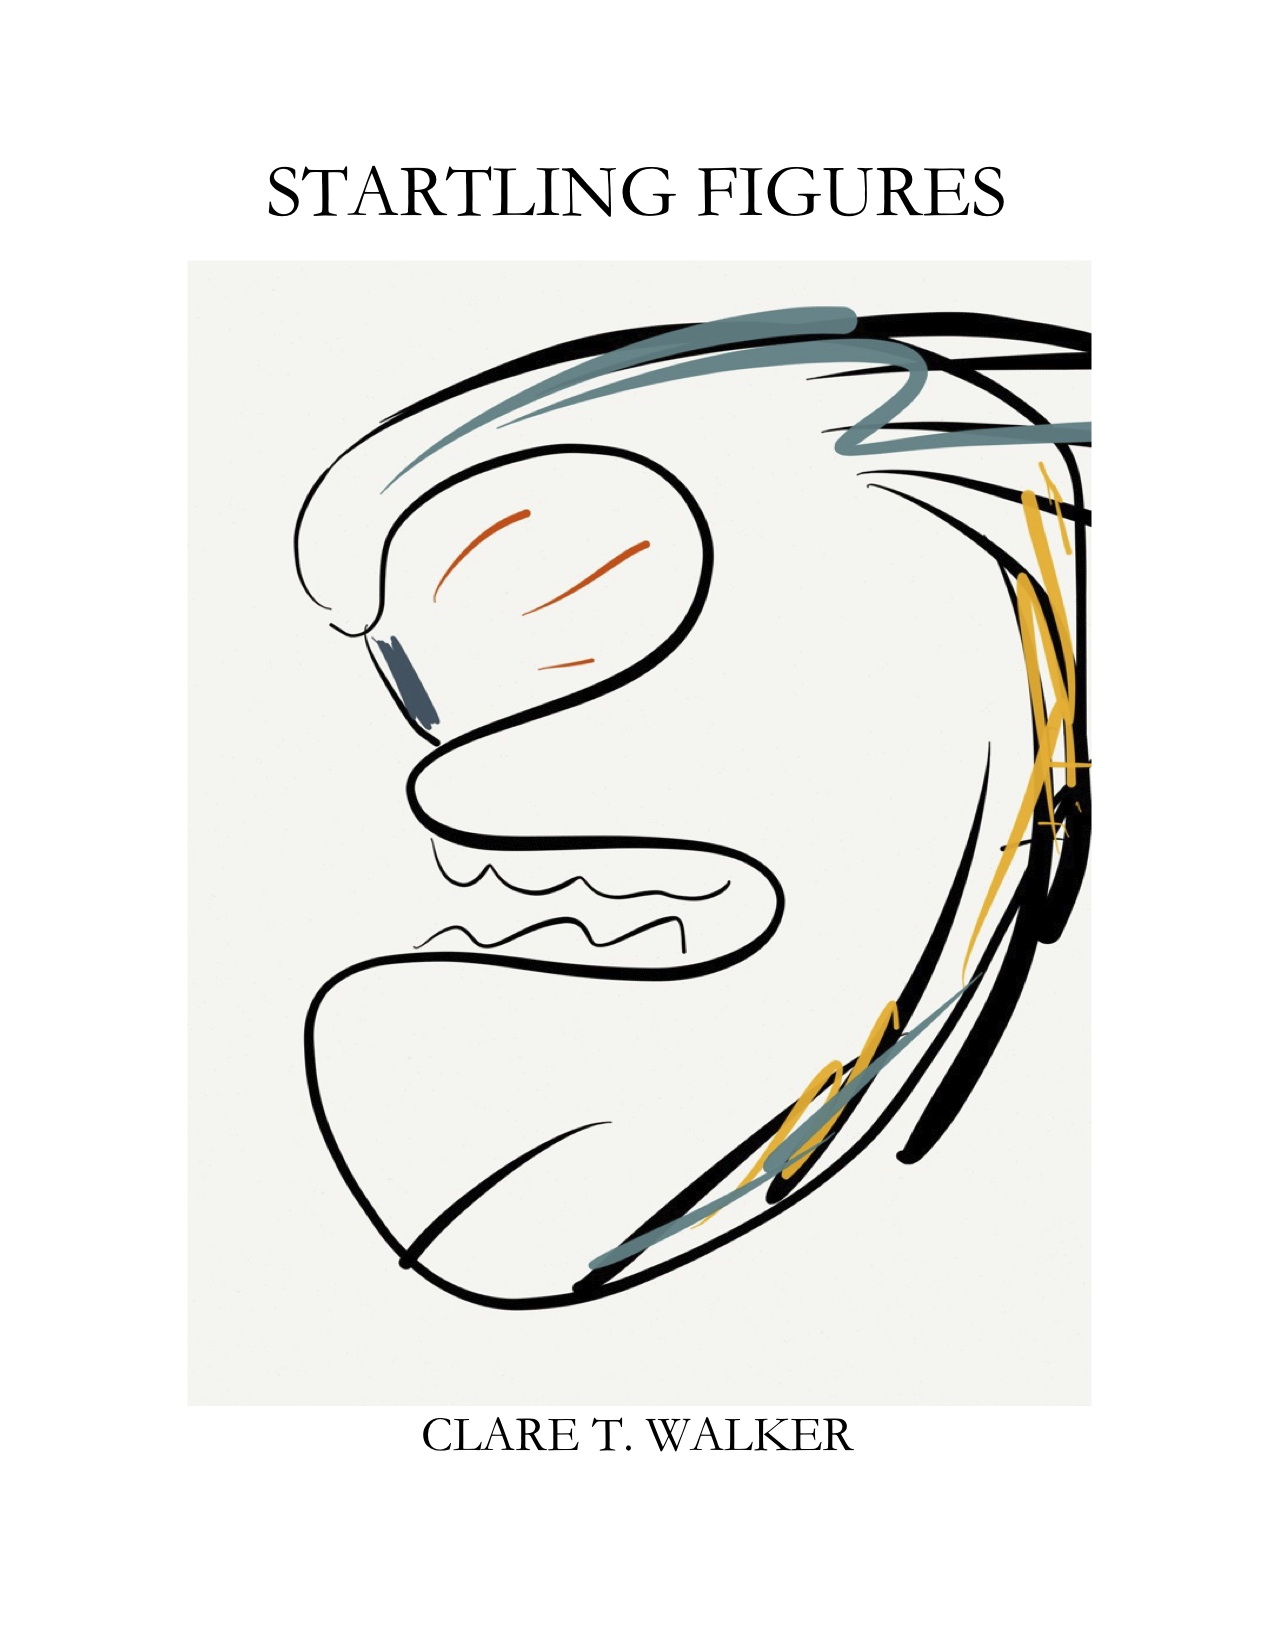 Clare's mock-up cover of Startling Figures